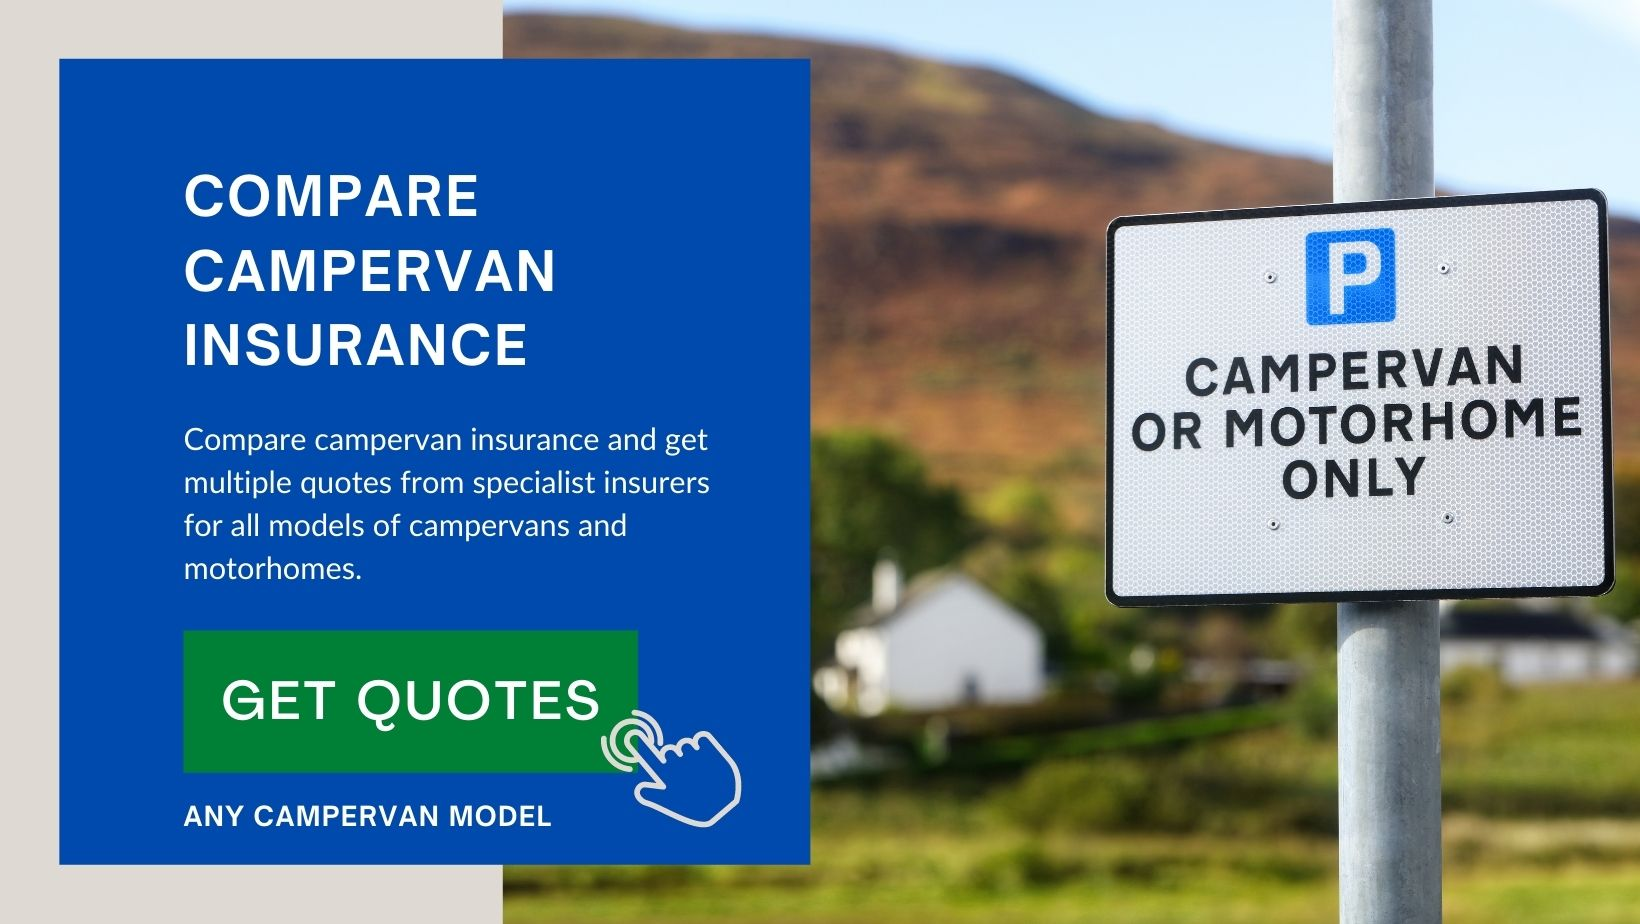 Compare campervan insurance with UKLI Compare